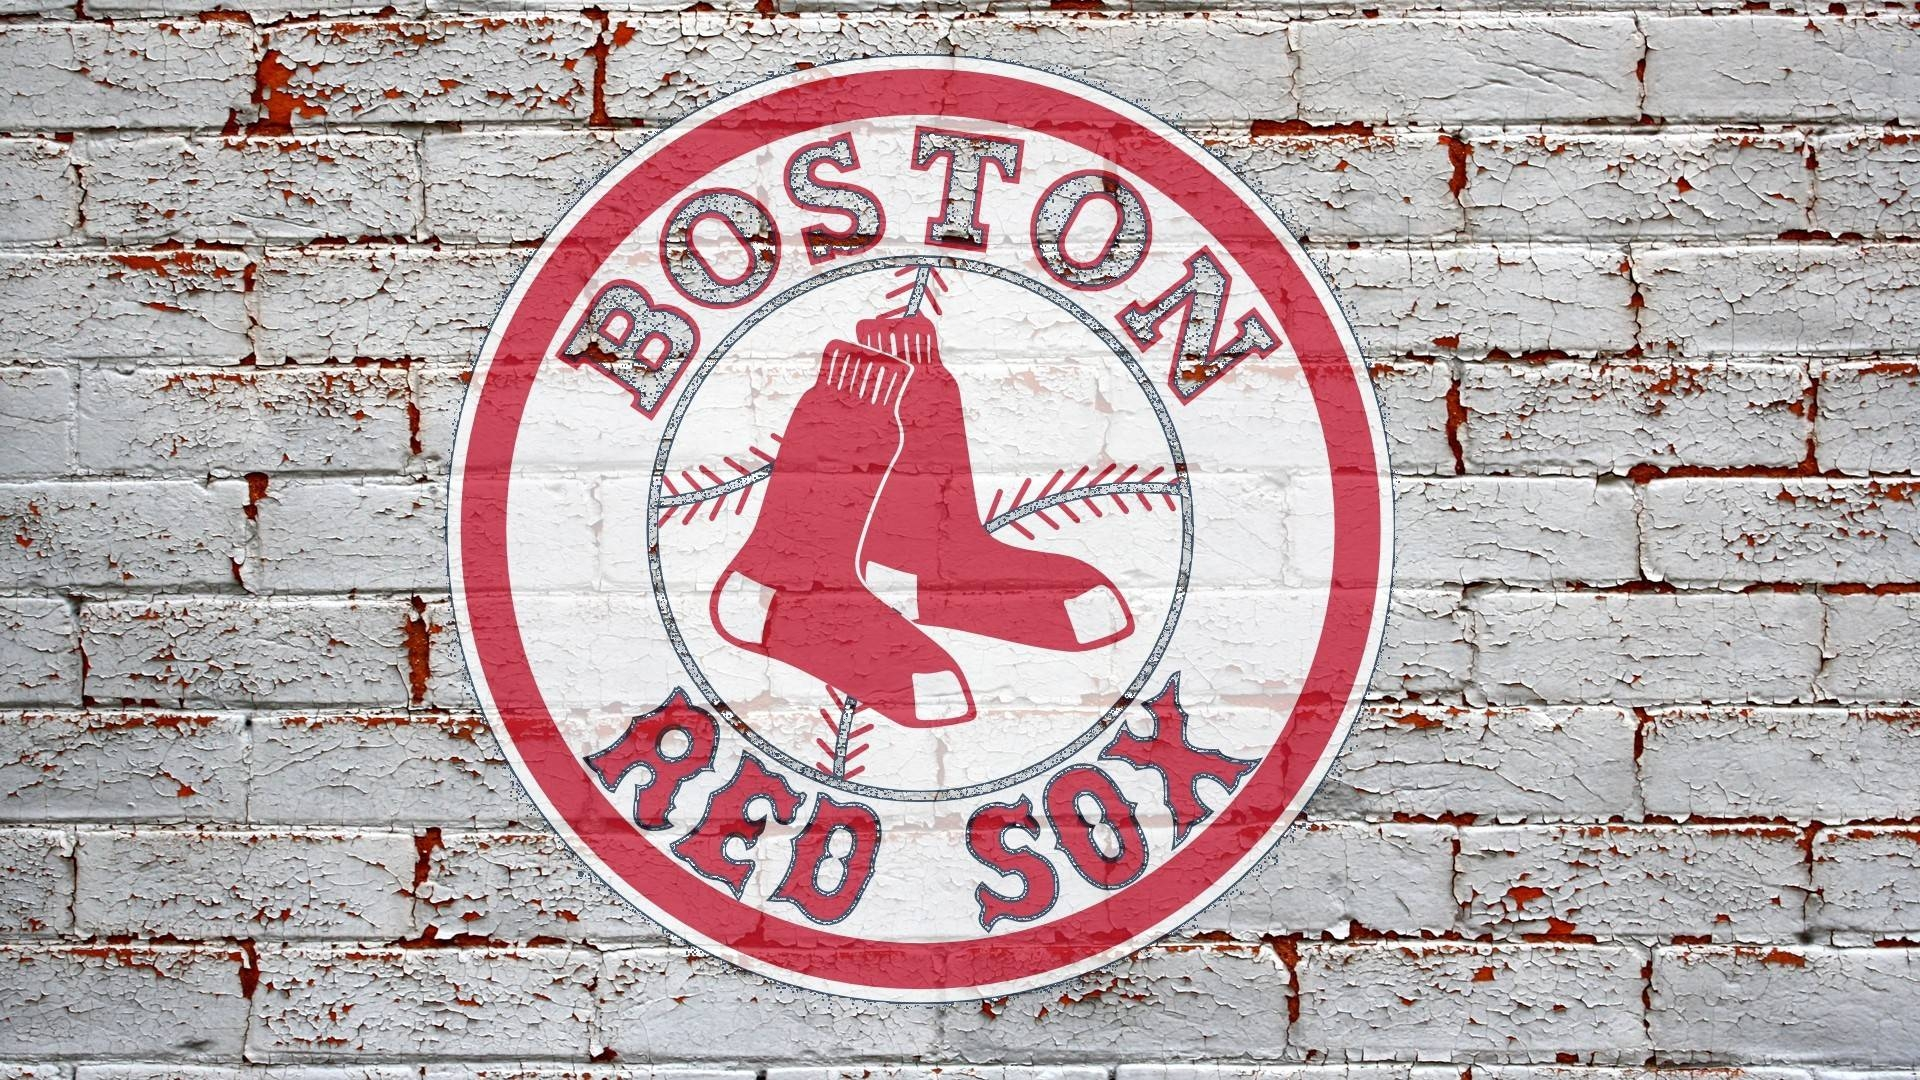 Boston Red Sox Wallpaper | Free Download Clip Art | Free Clip Art Regarding Newest Red Sox Wall Art (View 13 of 23)